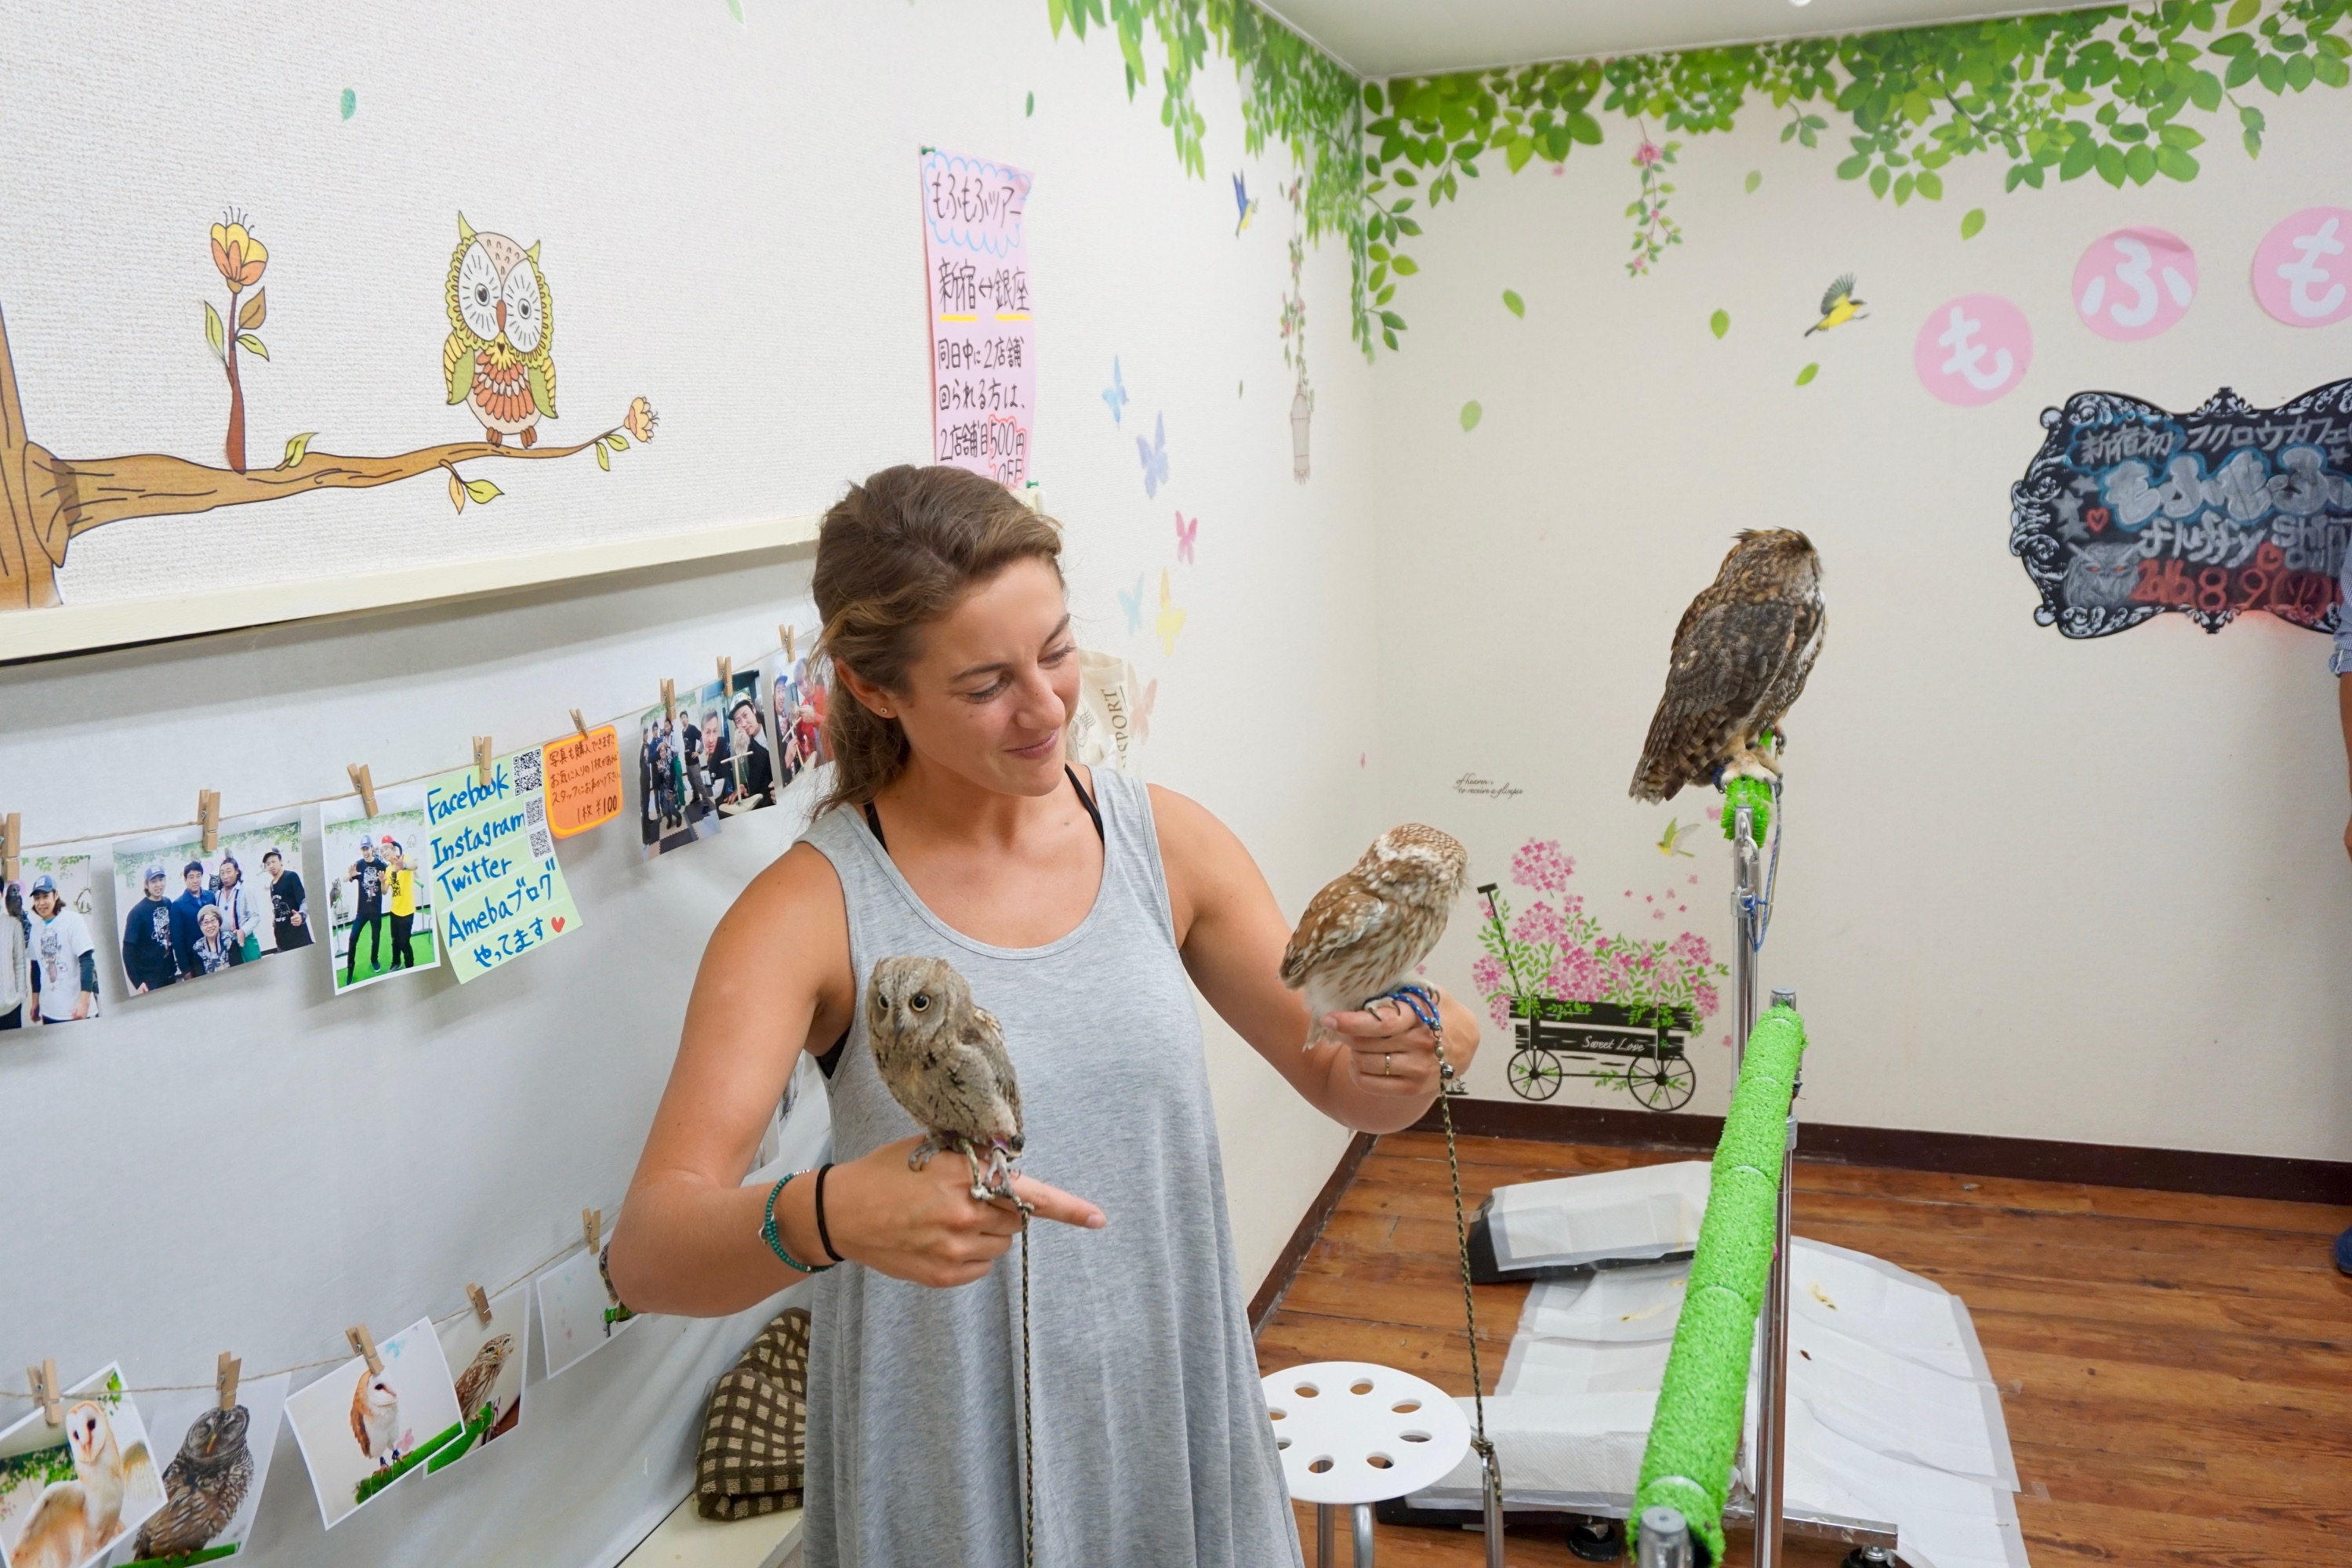 random visit with owls, because it's Tokyo